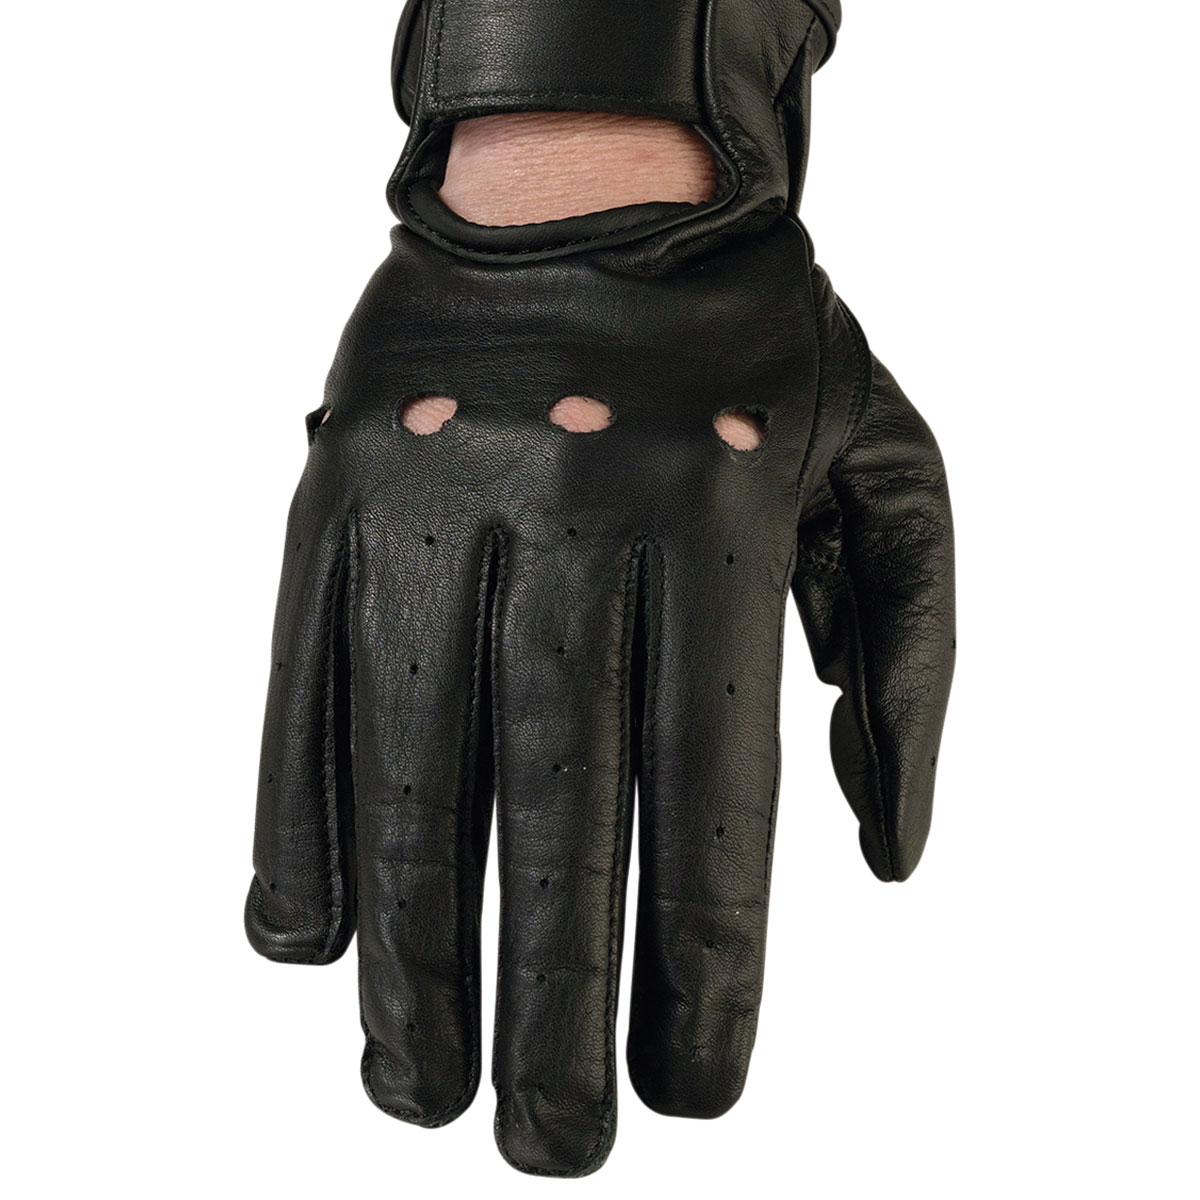 Z1R Women's 243 Black Leather Gloves